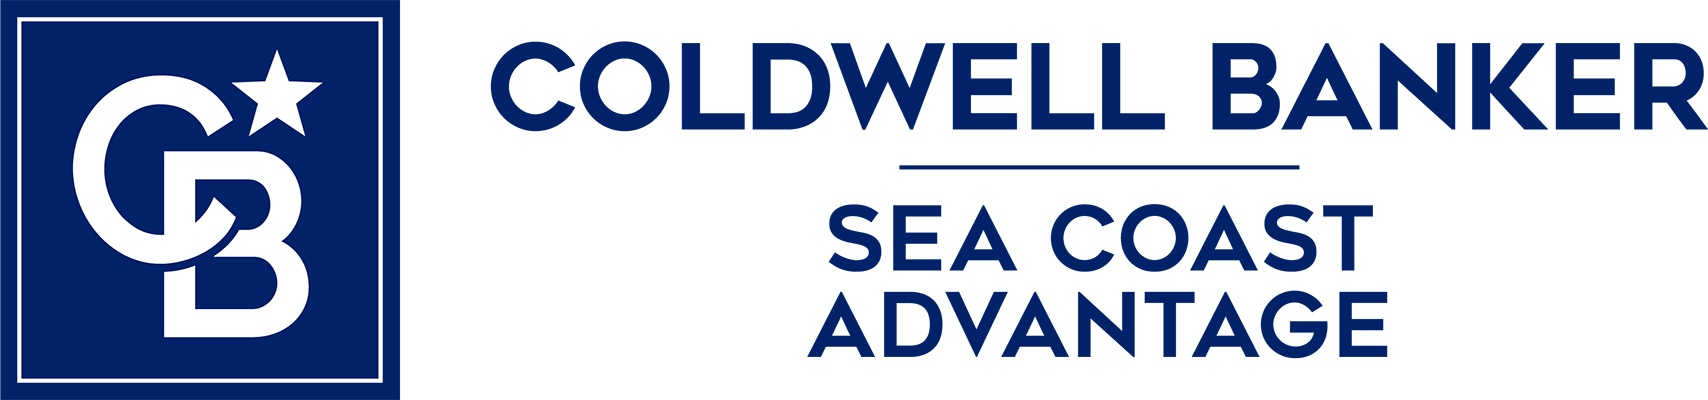 Jerry Strickland - Coldwell Banker Sea Coast Advantage Realty Logo